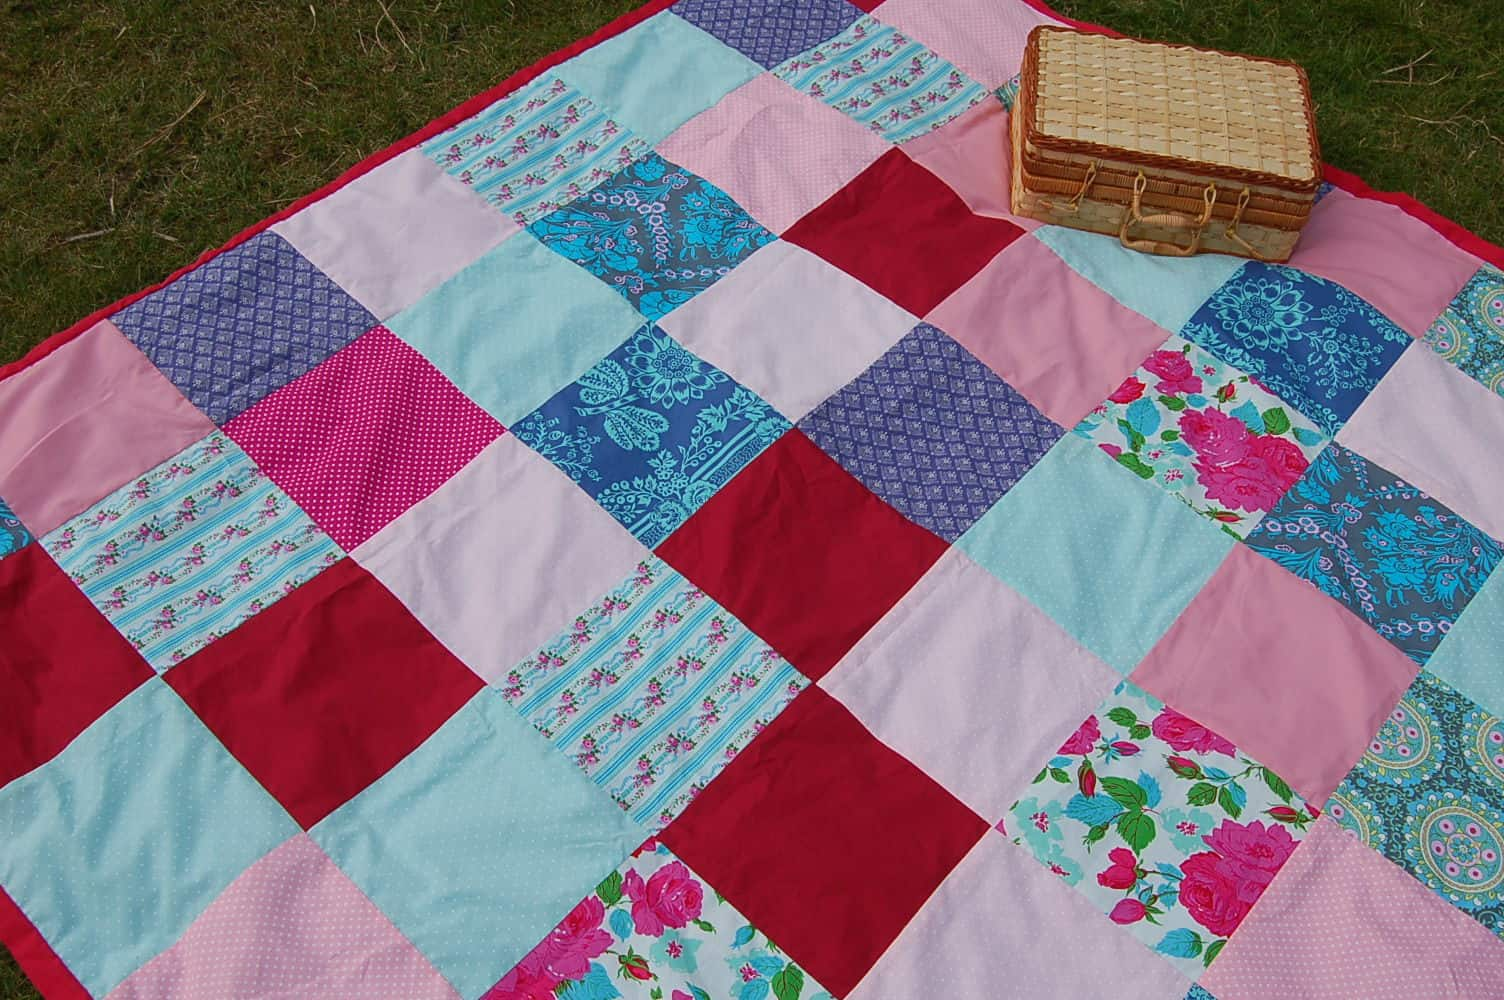 Scrap fabric patchwork picnic blanket